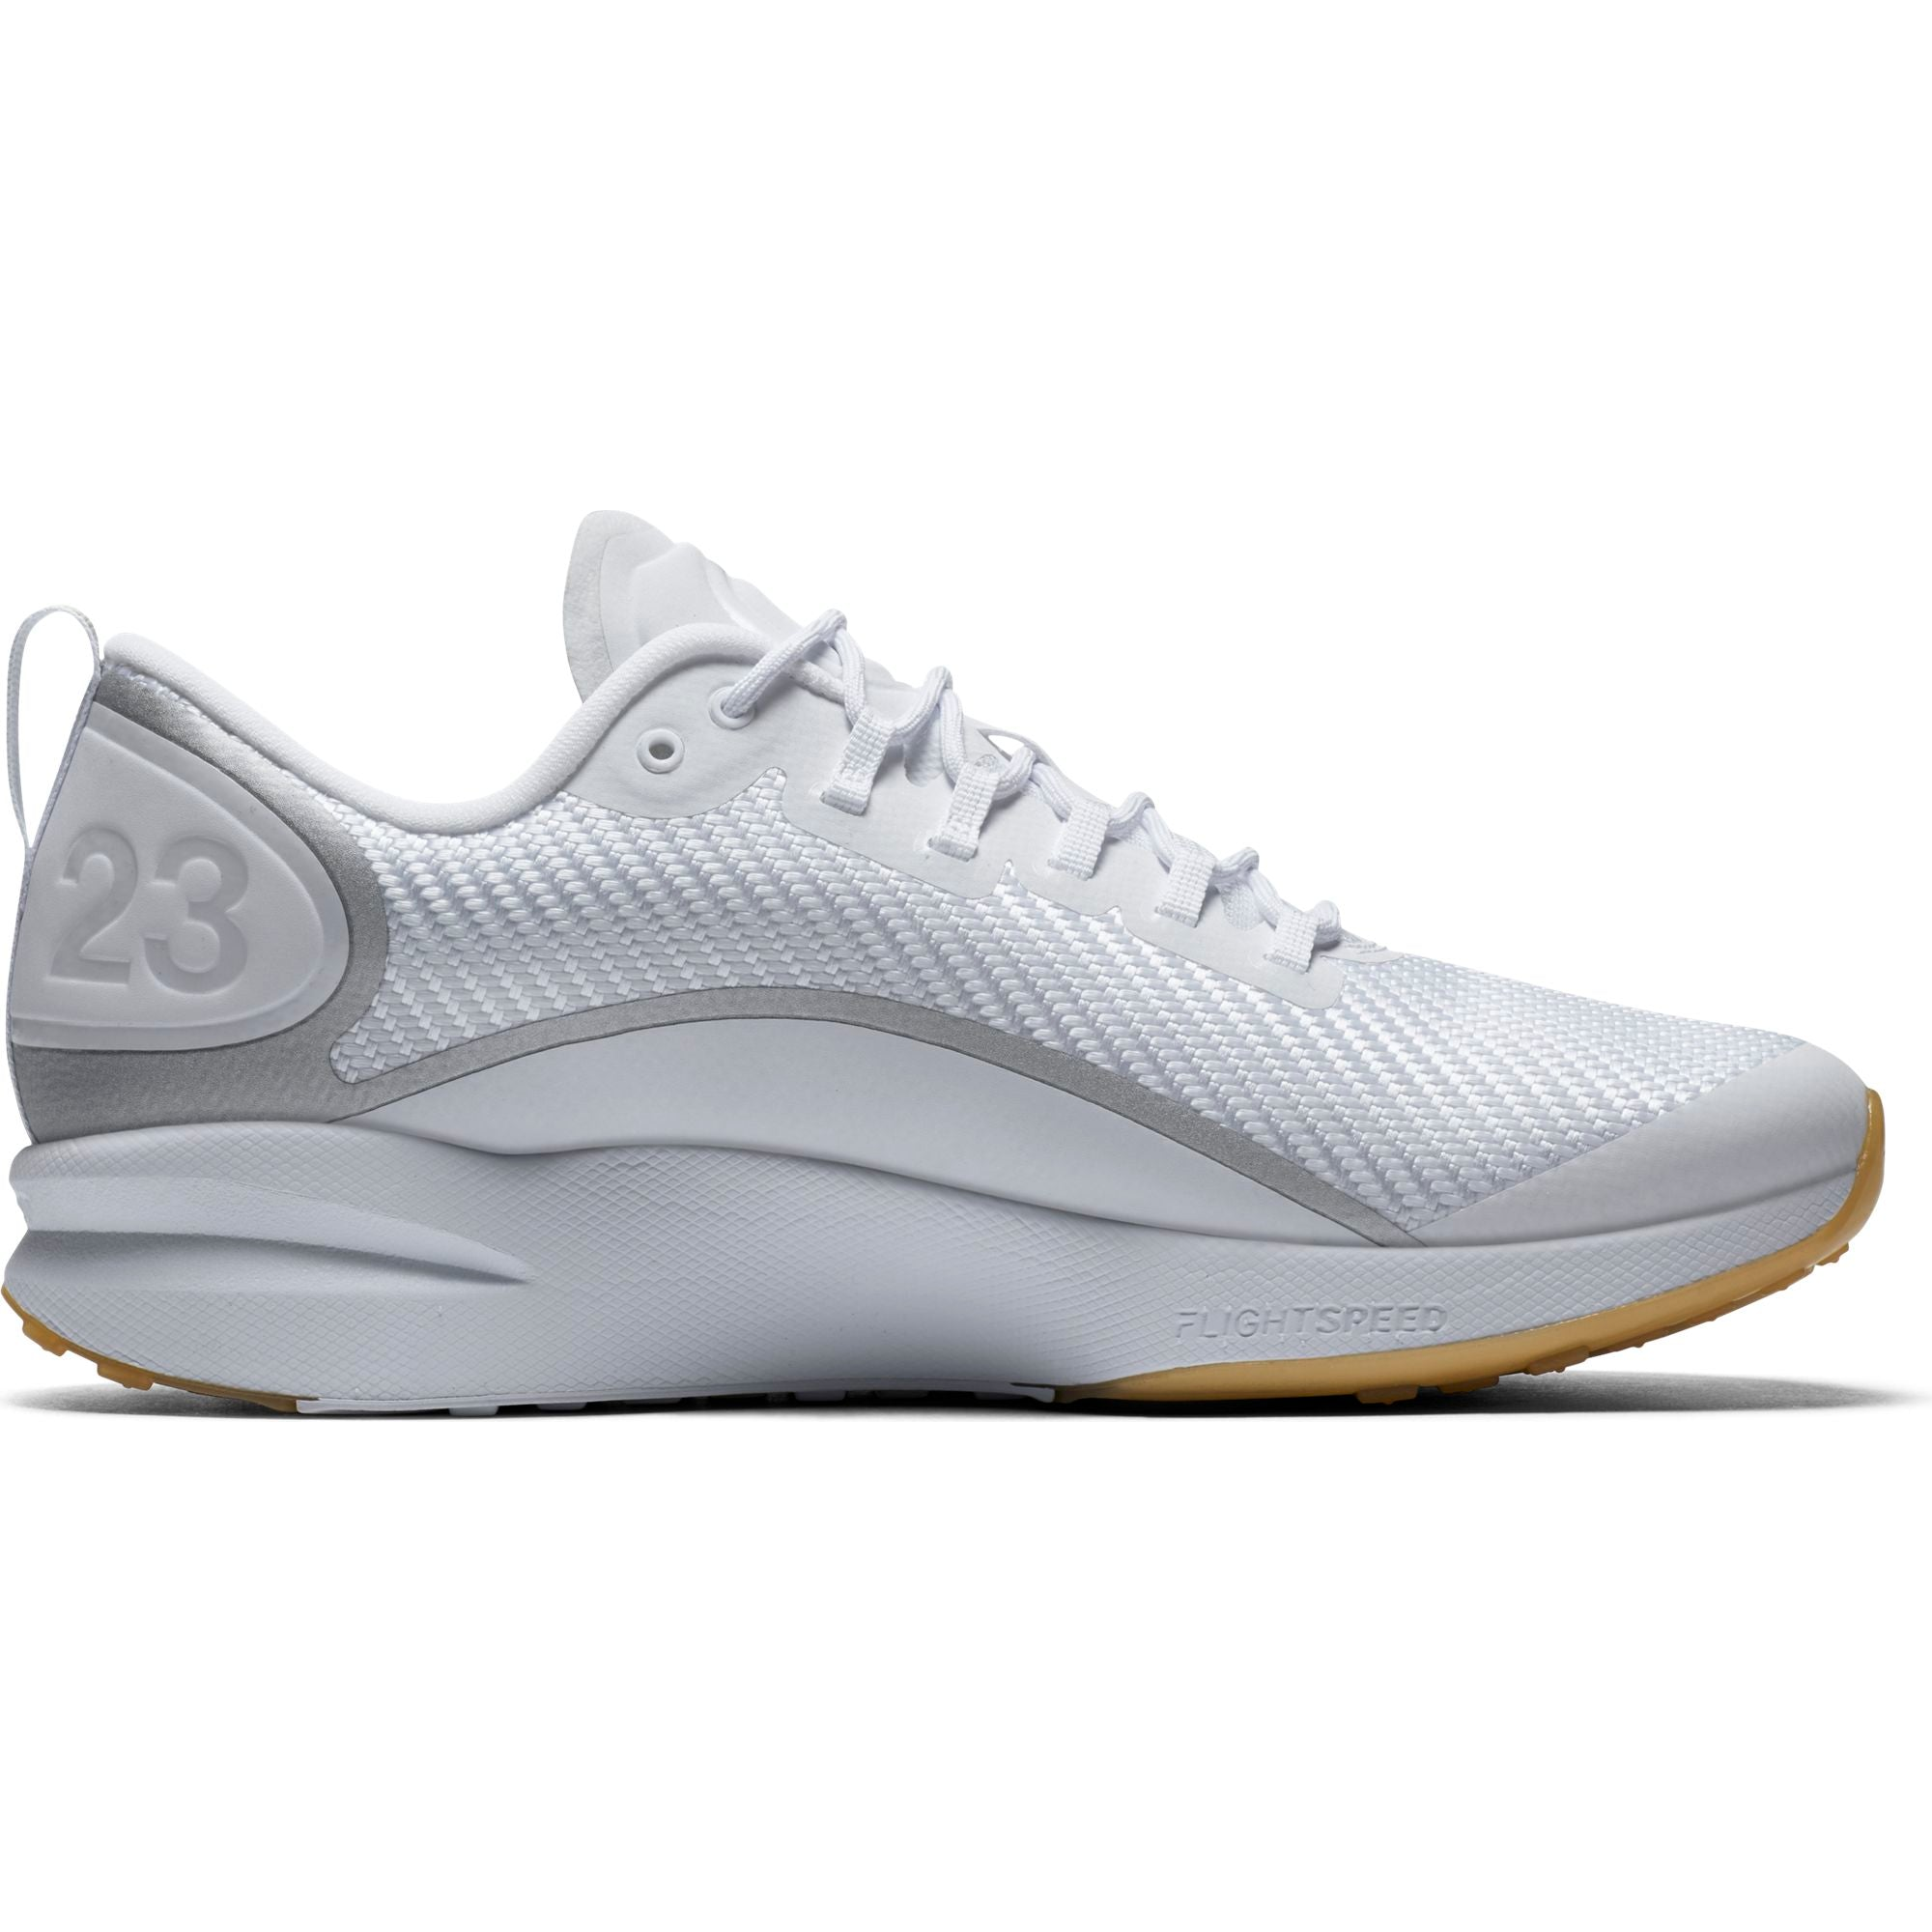 Nike Jordan Training Zoom Tenacity Running Shoe - White/Gum Light Brown